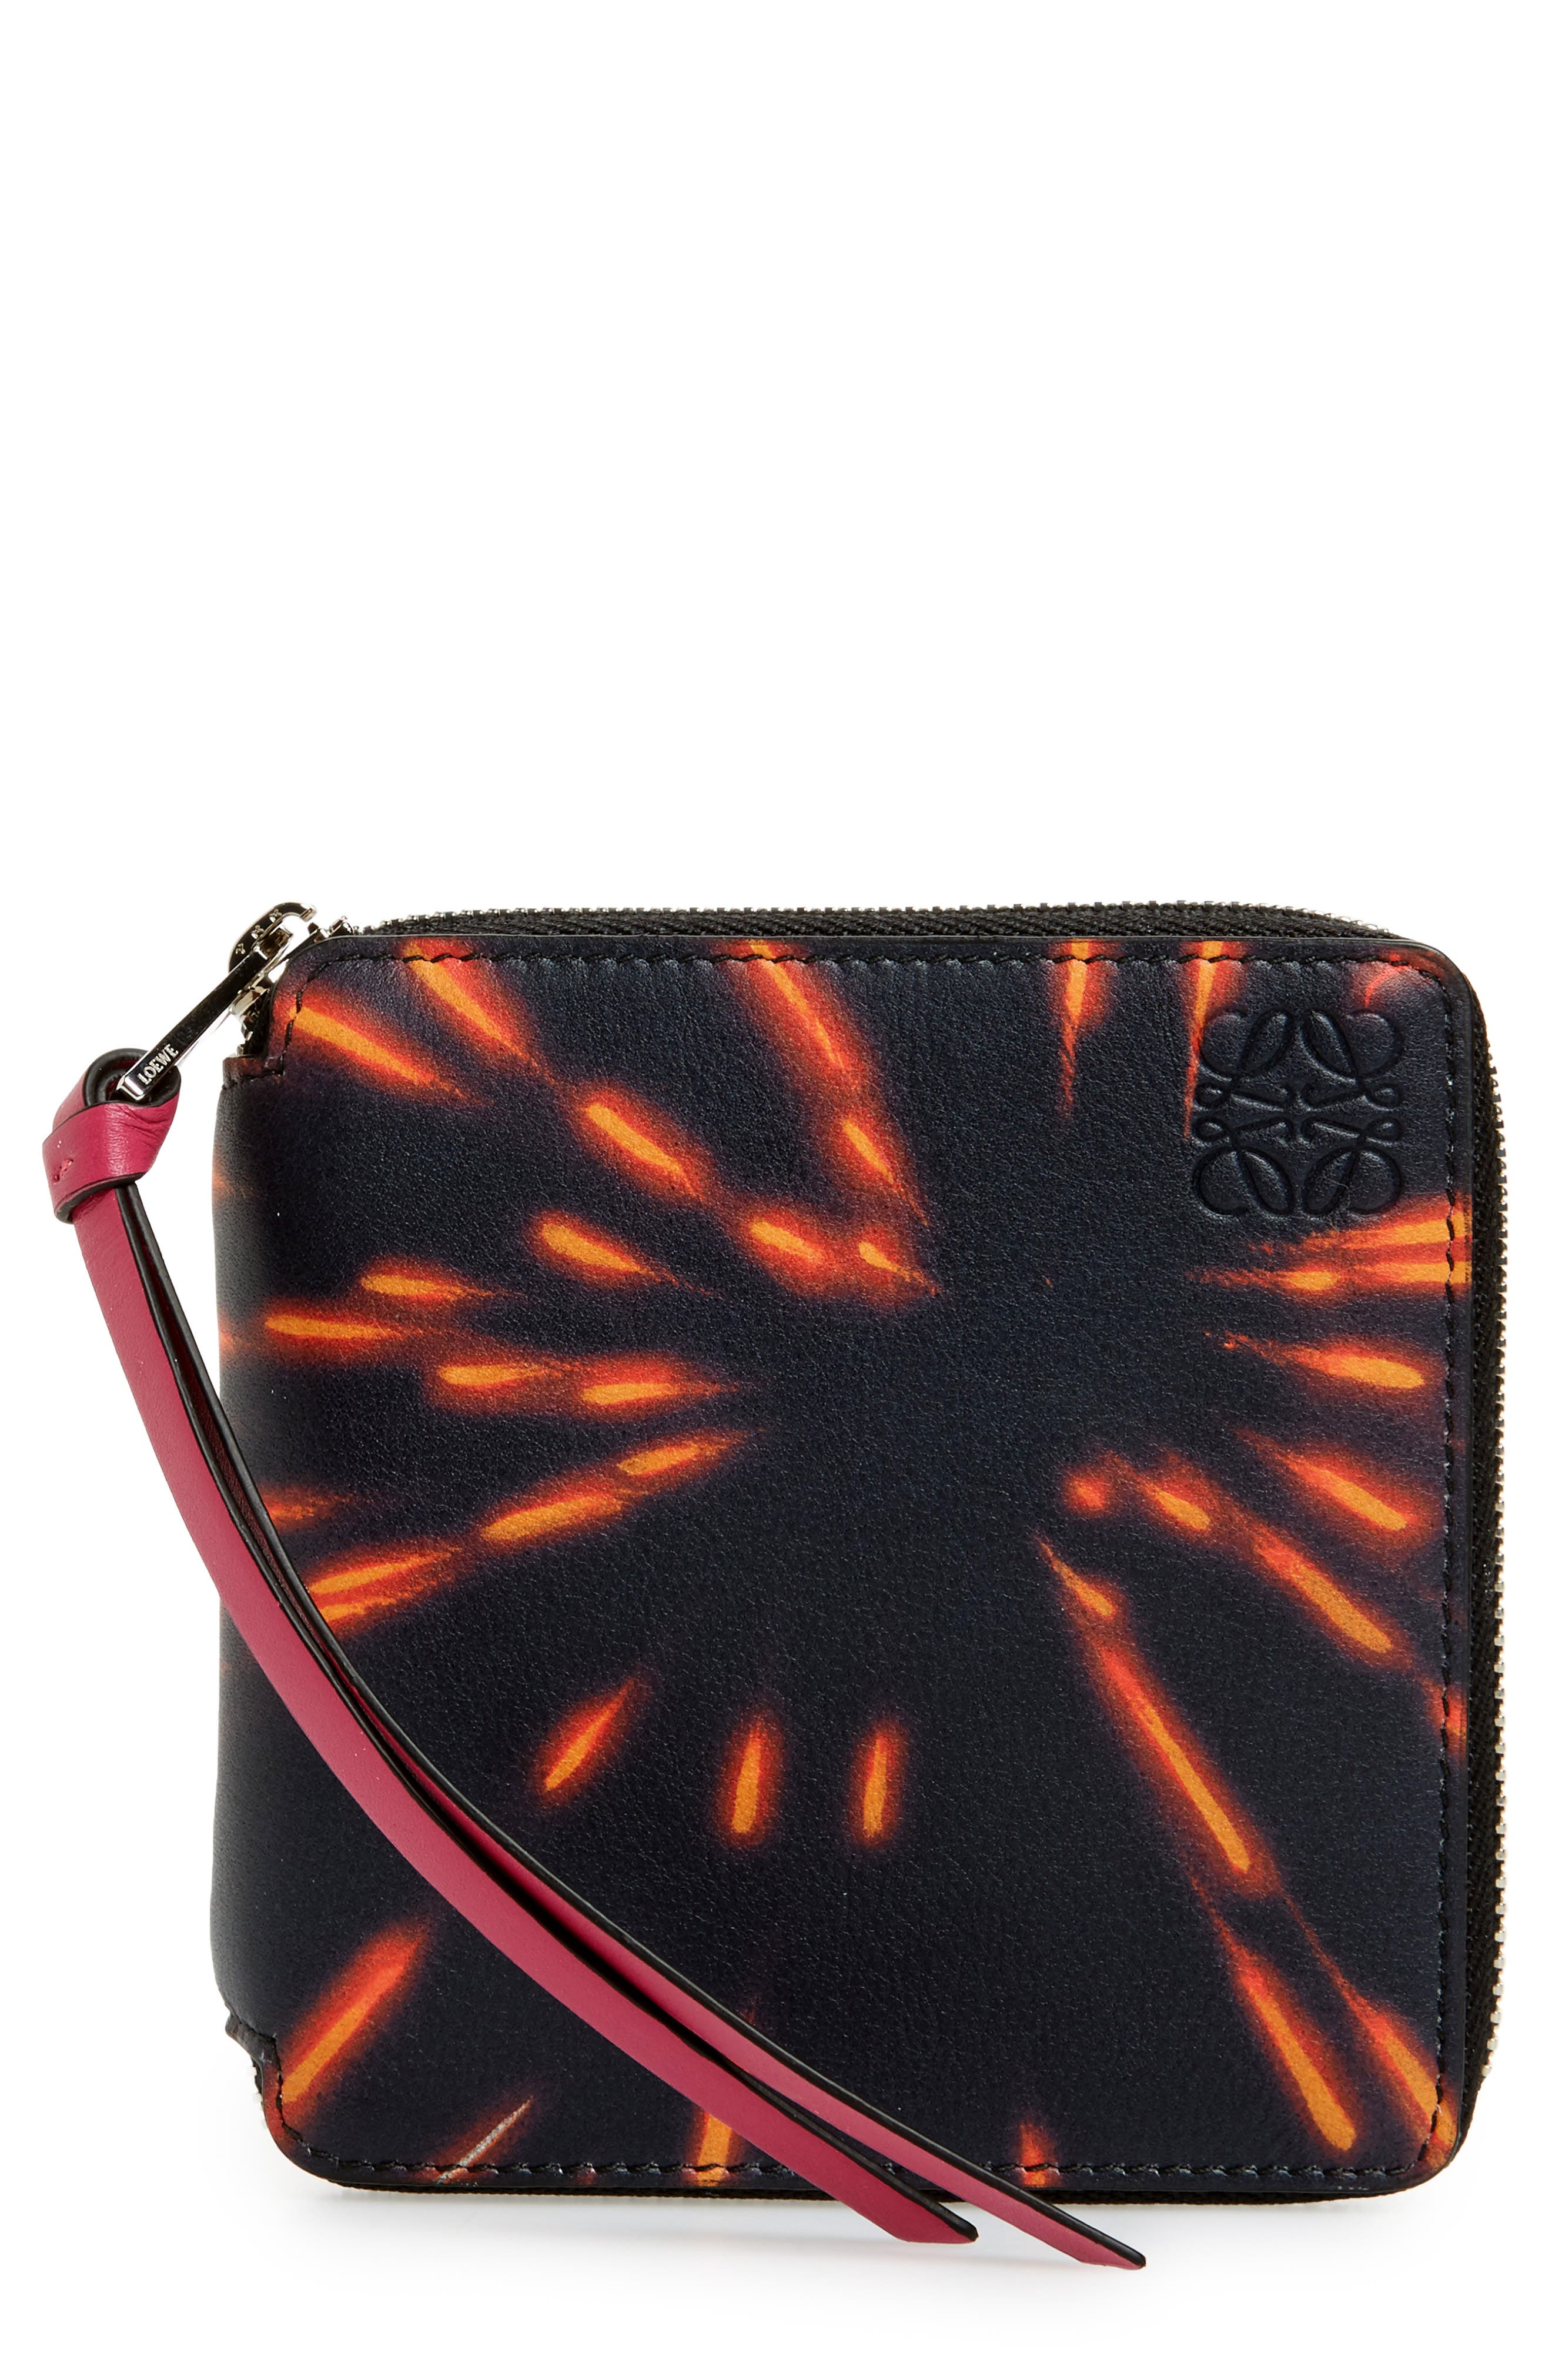 Fireworks Print Calfskin Leather Zip Wallet,                         Main,                         color, White